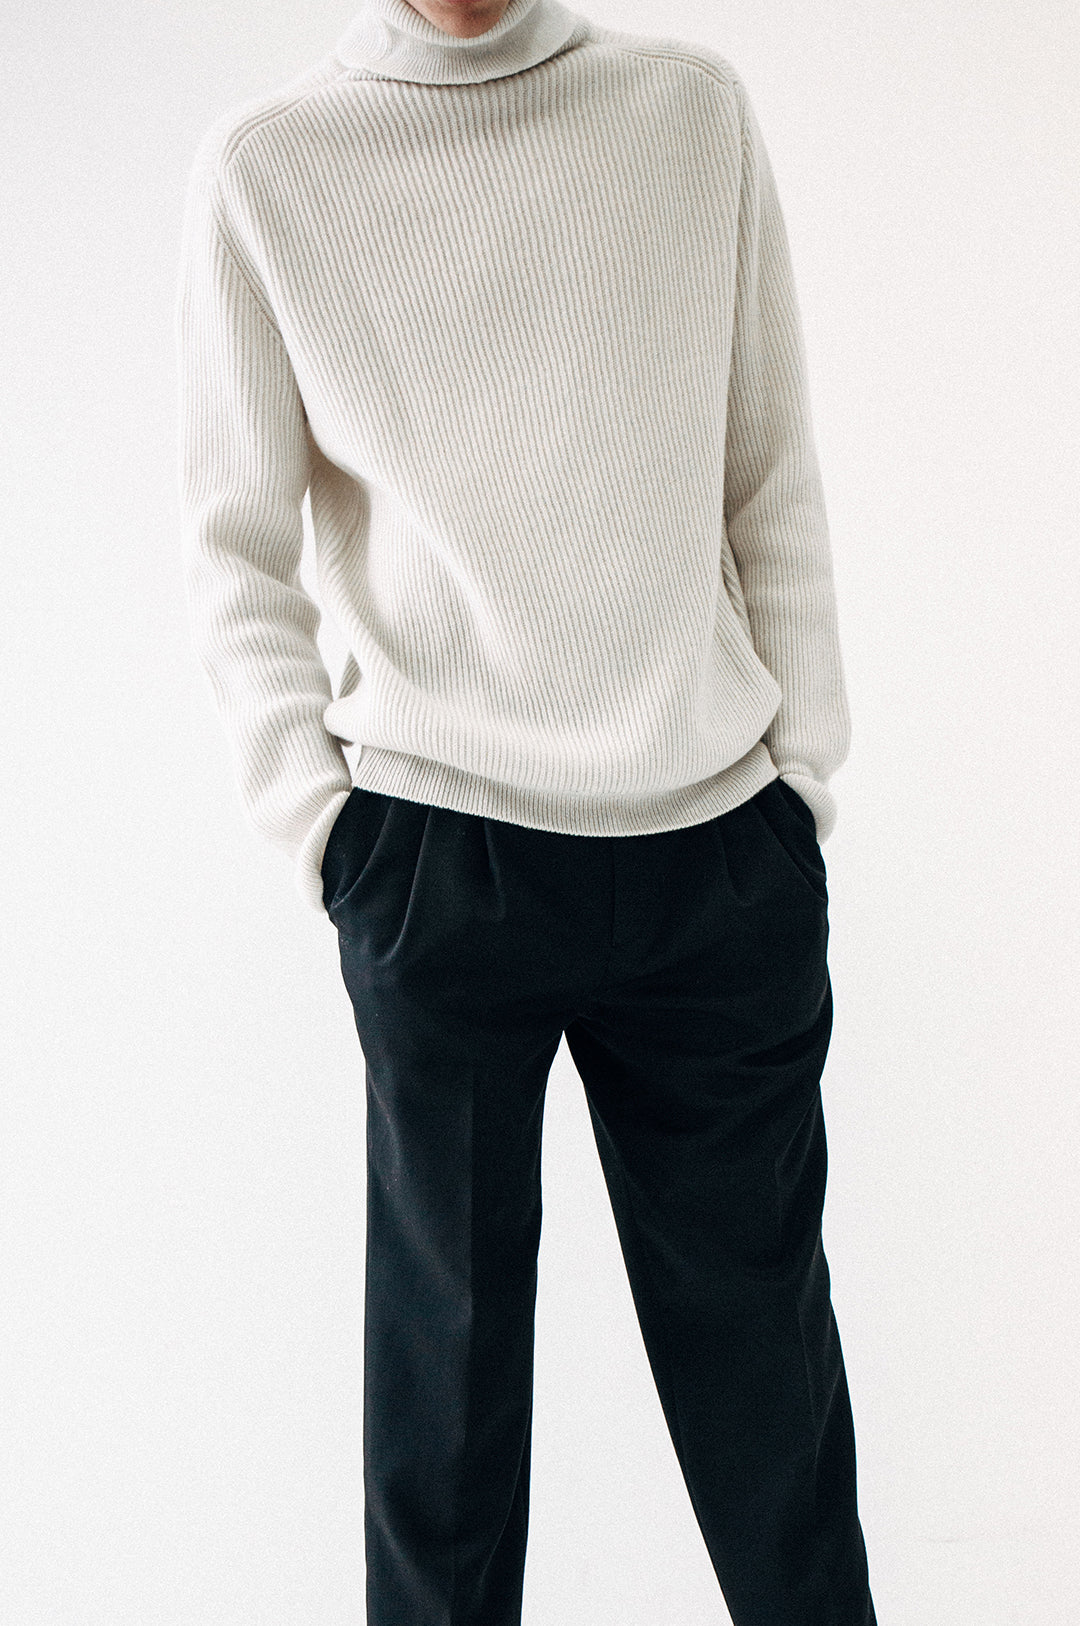 made in italy cashmere turtleneck